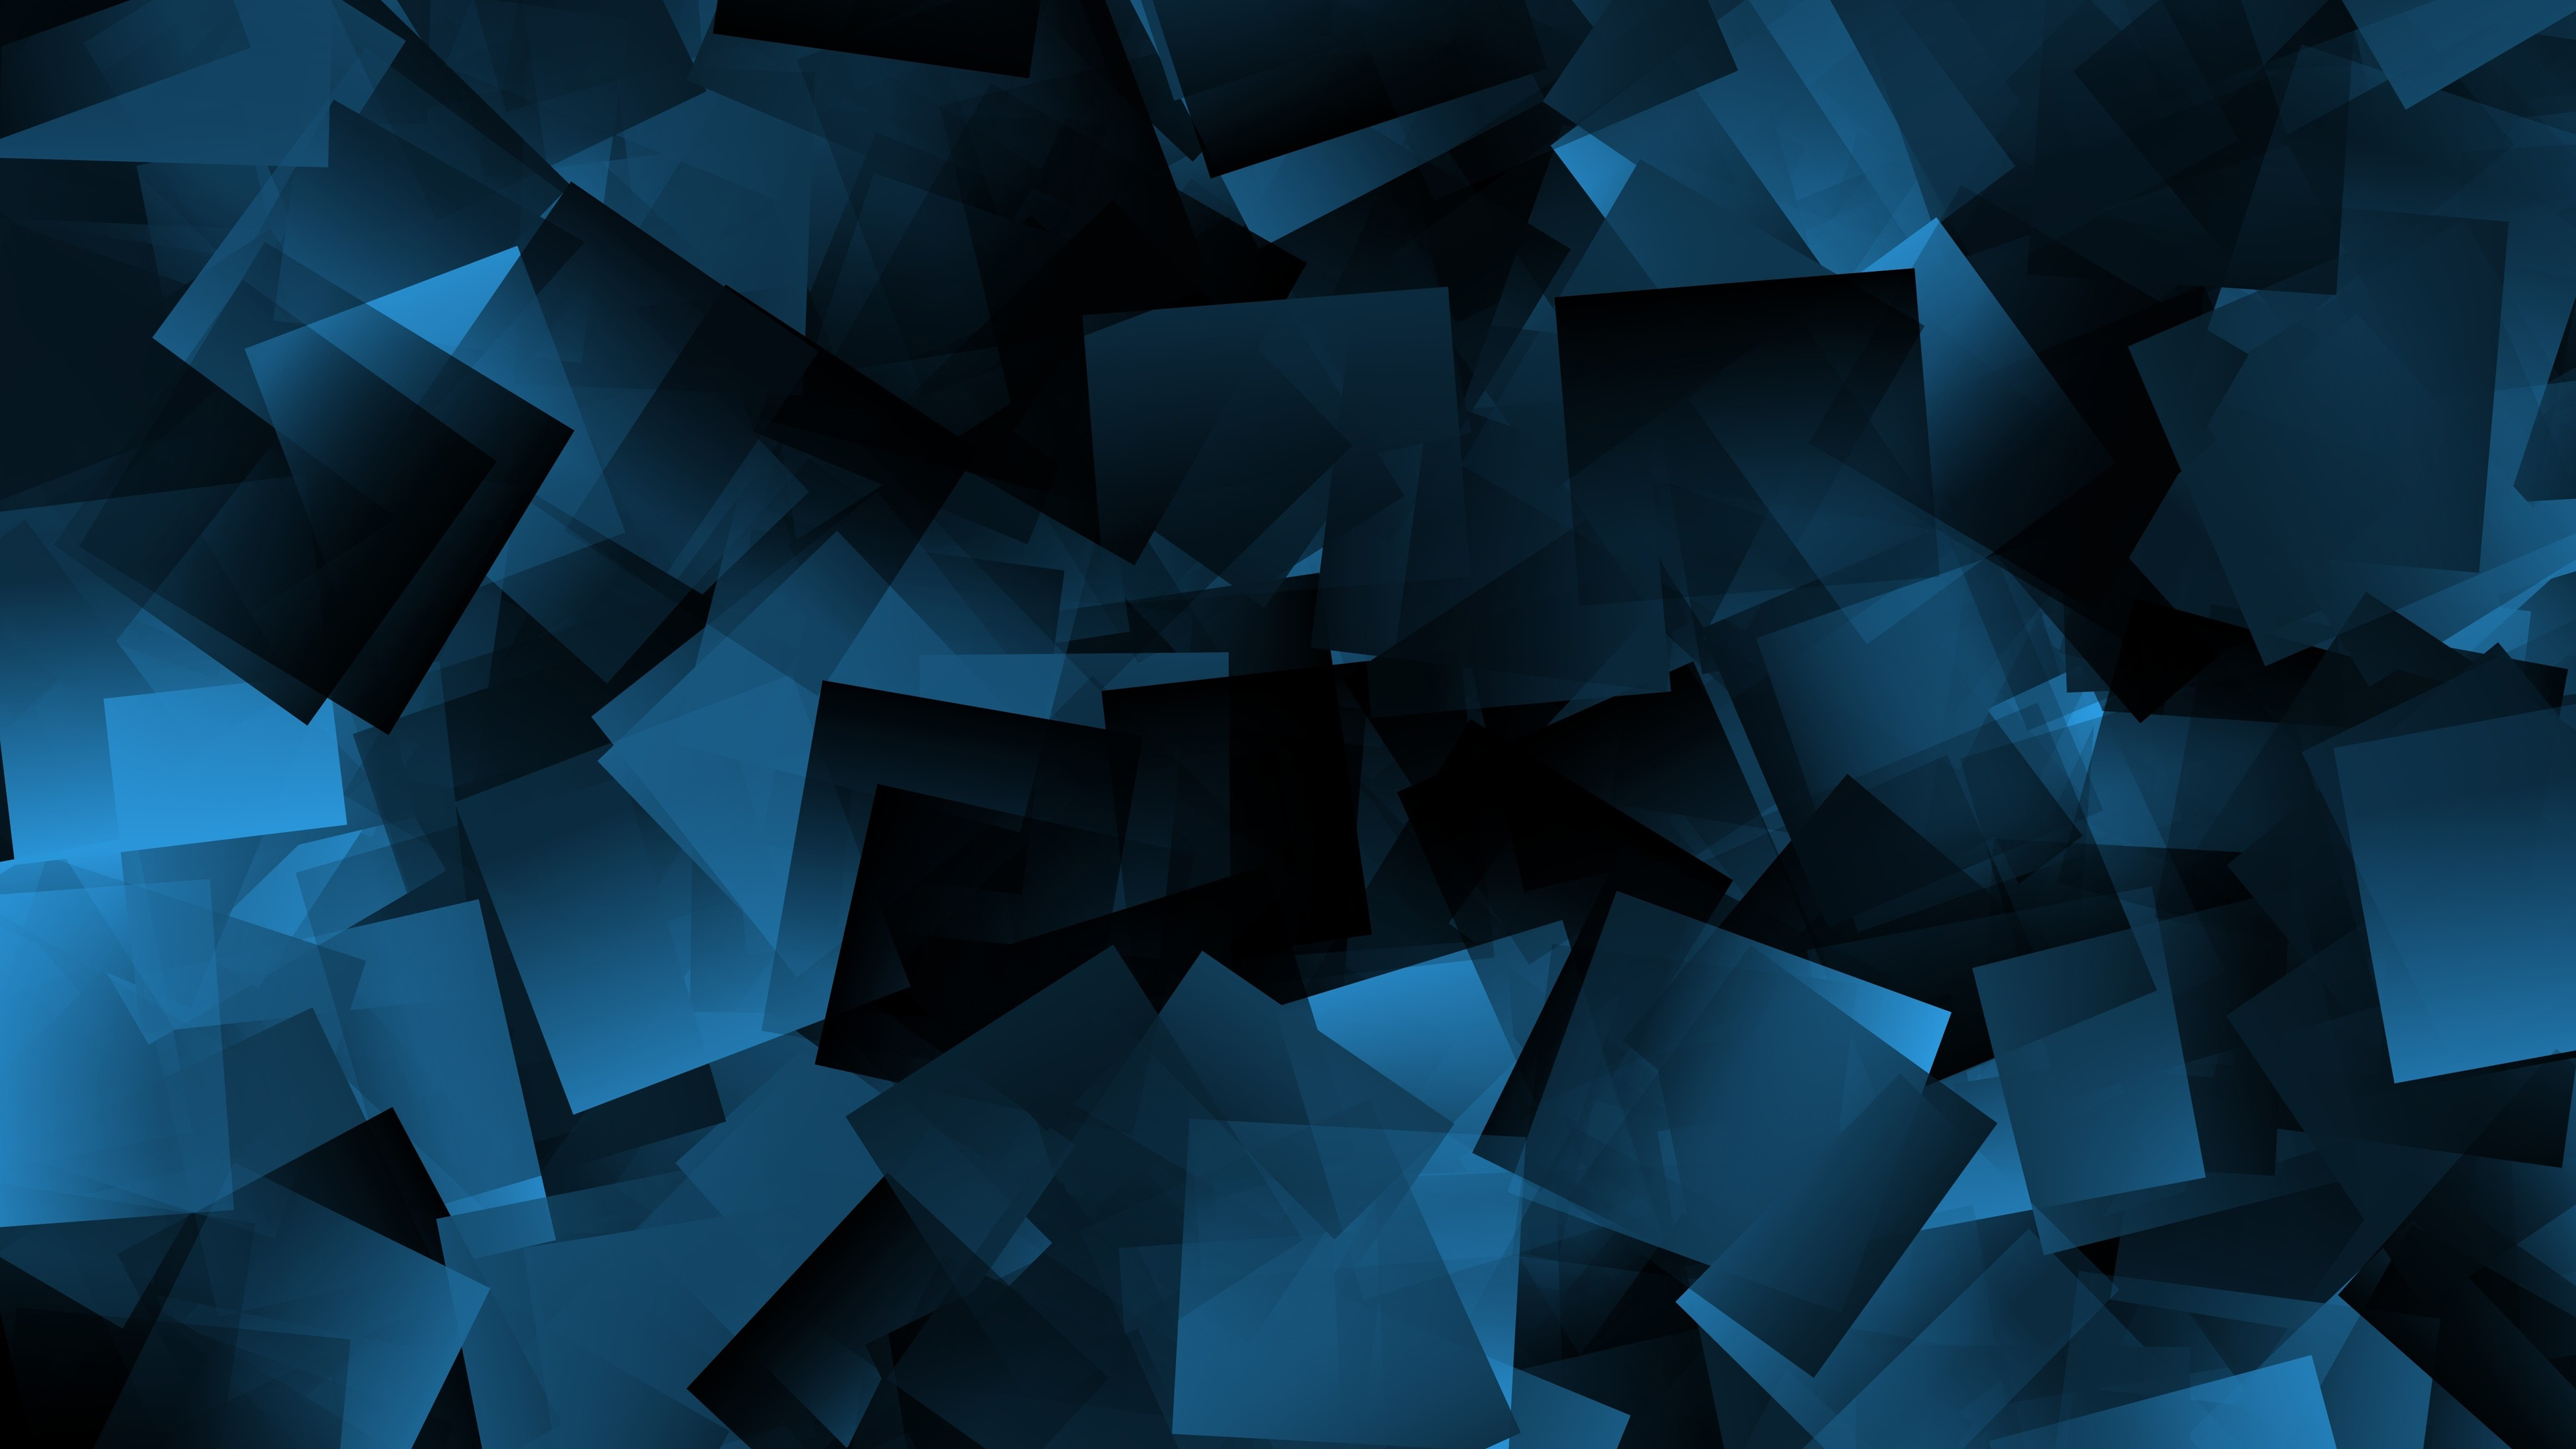 Wallpaper Blue Shapes Abstract Black Background 3840x2160 Uhd 4k Picture Image